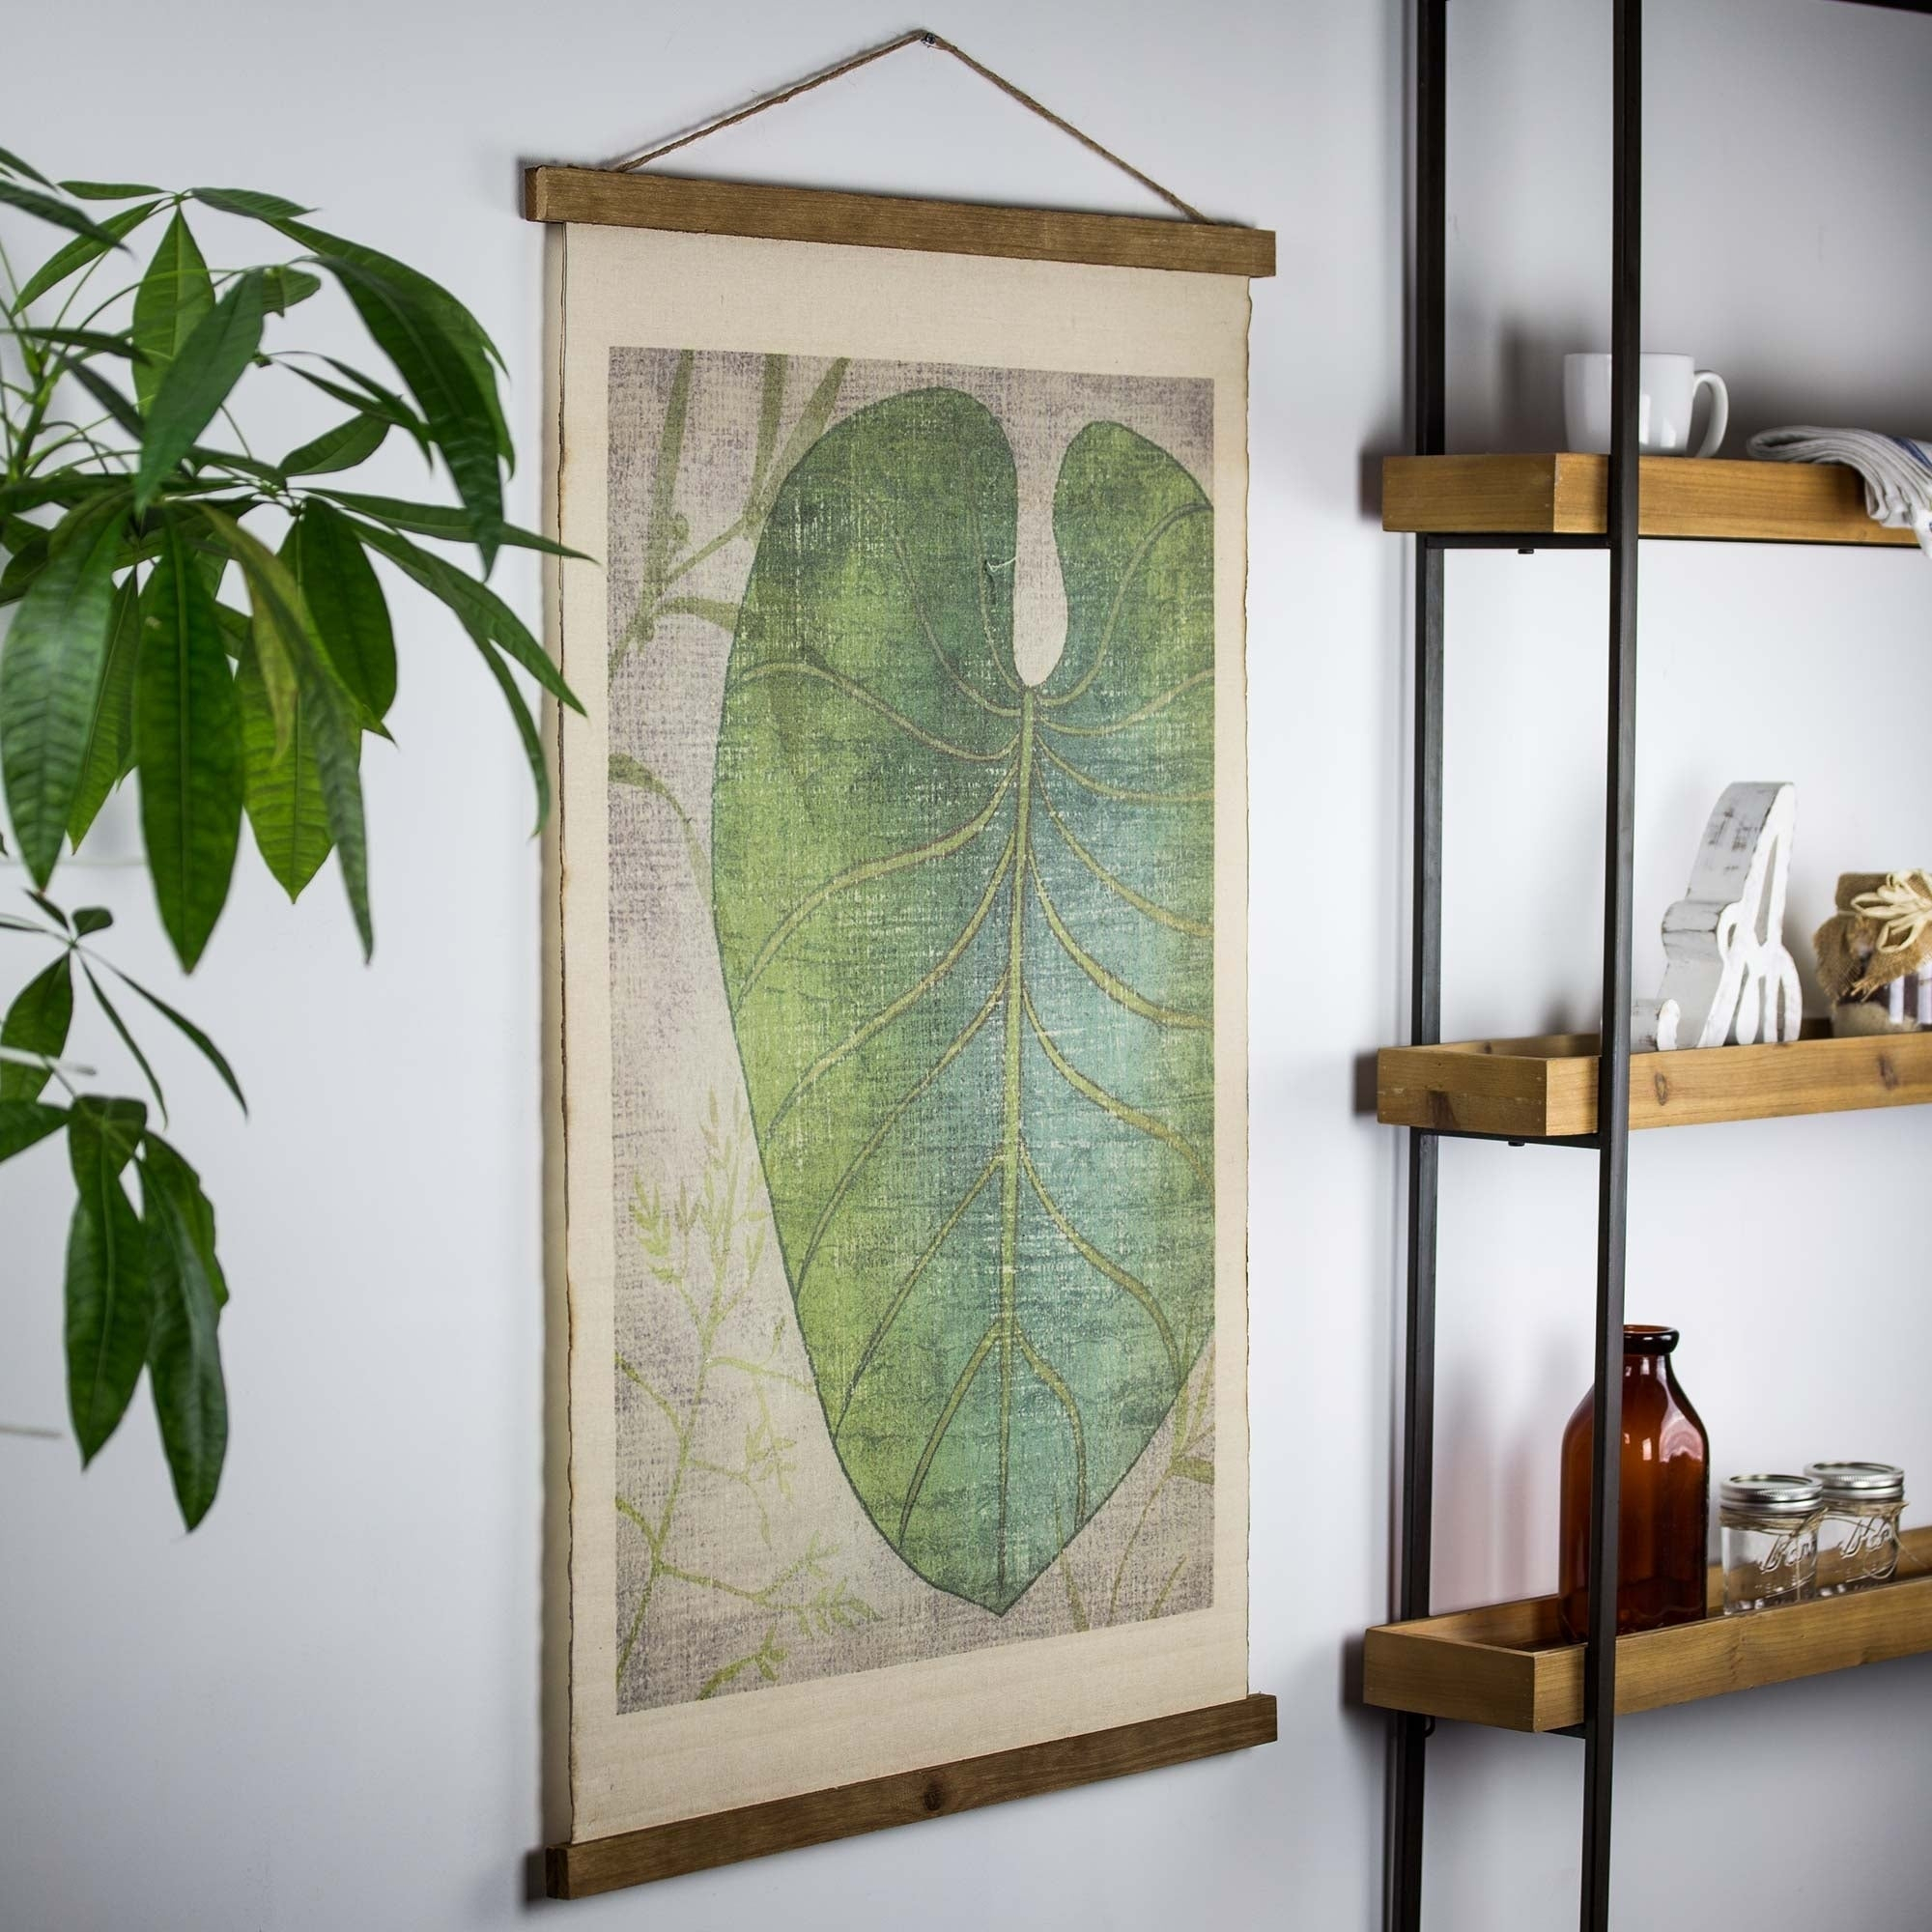 Newest Shop American Art Decor Leaf Wall Scroll Tapestry With Rope - Free throughout Scroll Leaf Wall Decor